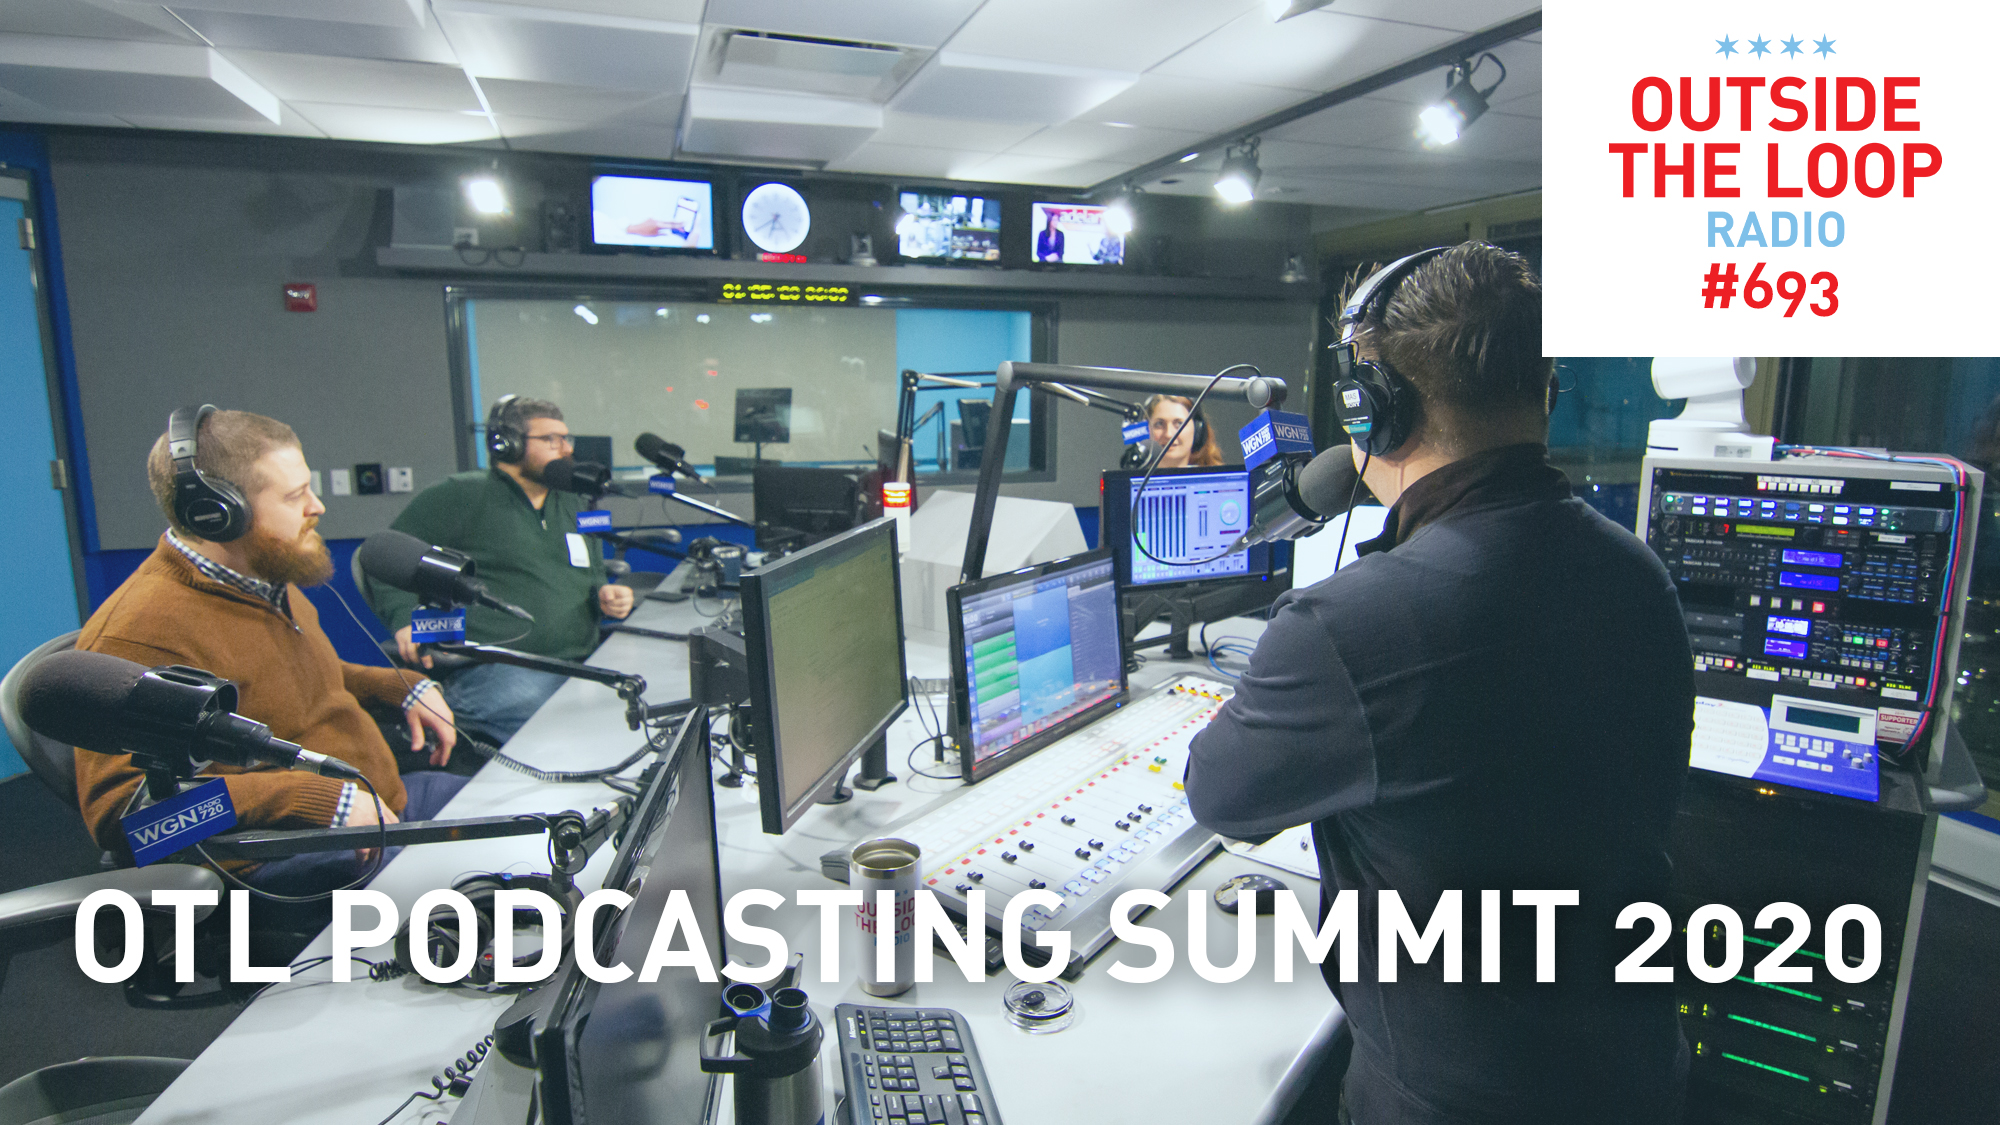 Mike Stephen hosts the OTL 2020 Podcasting Summit.